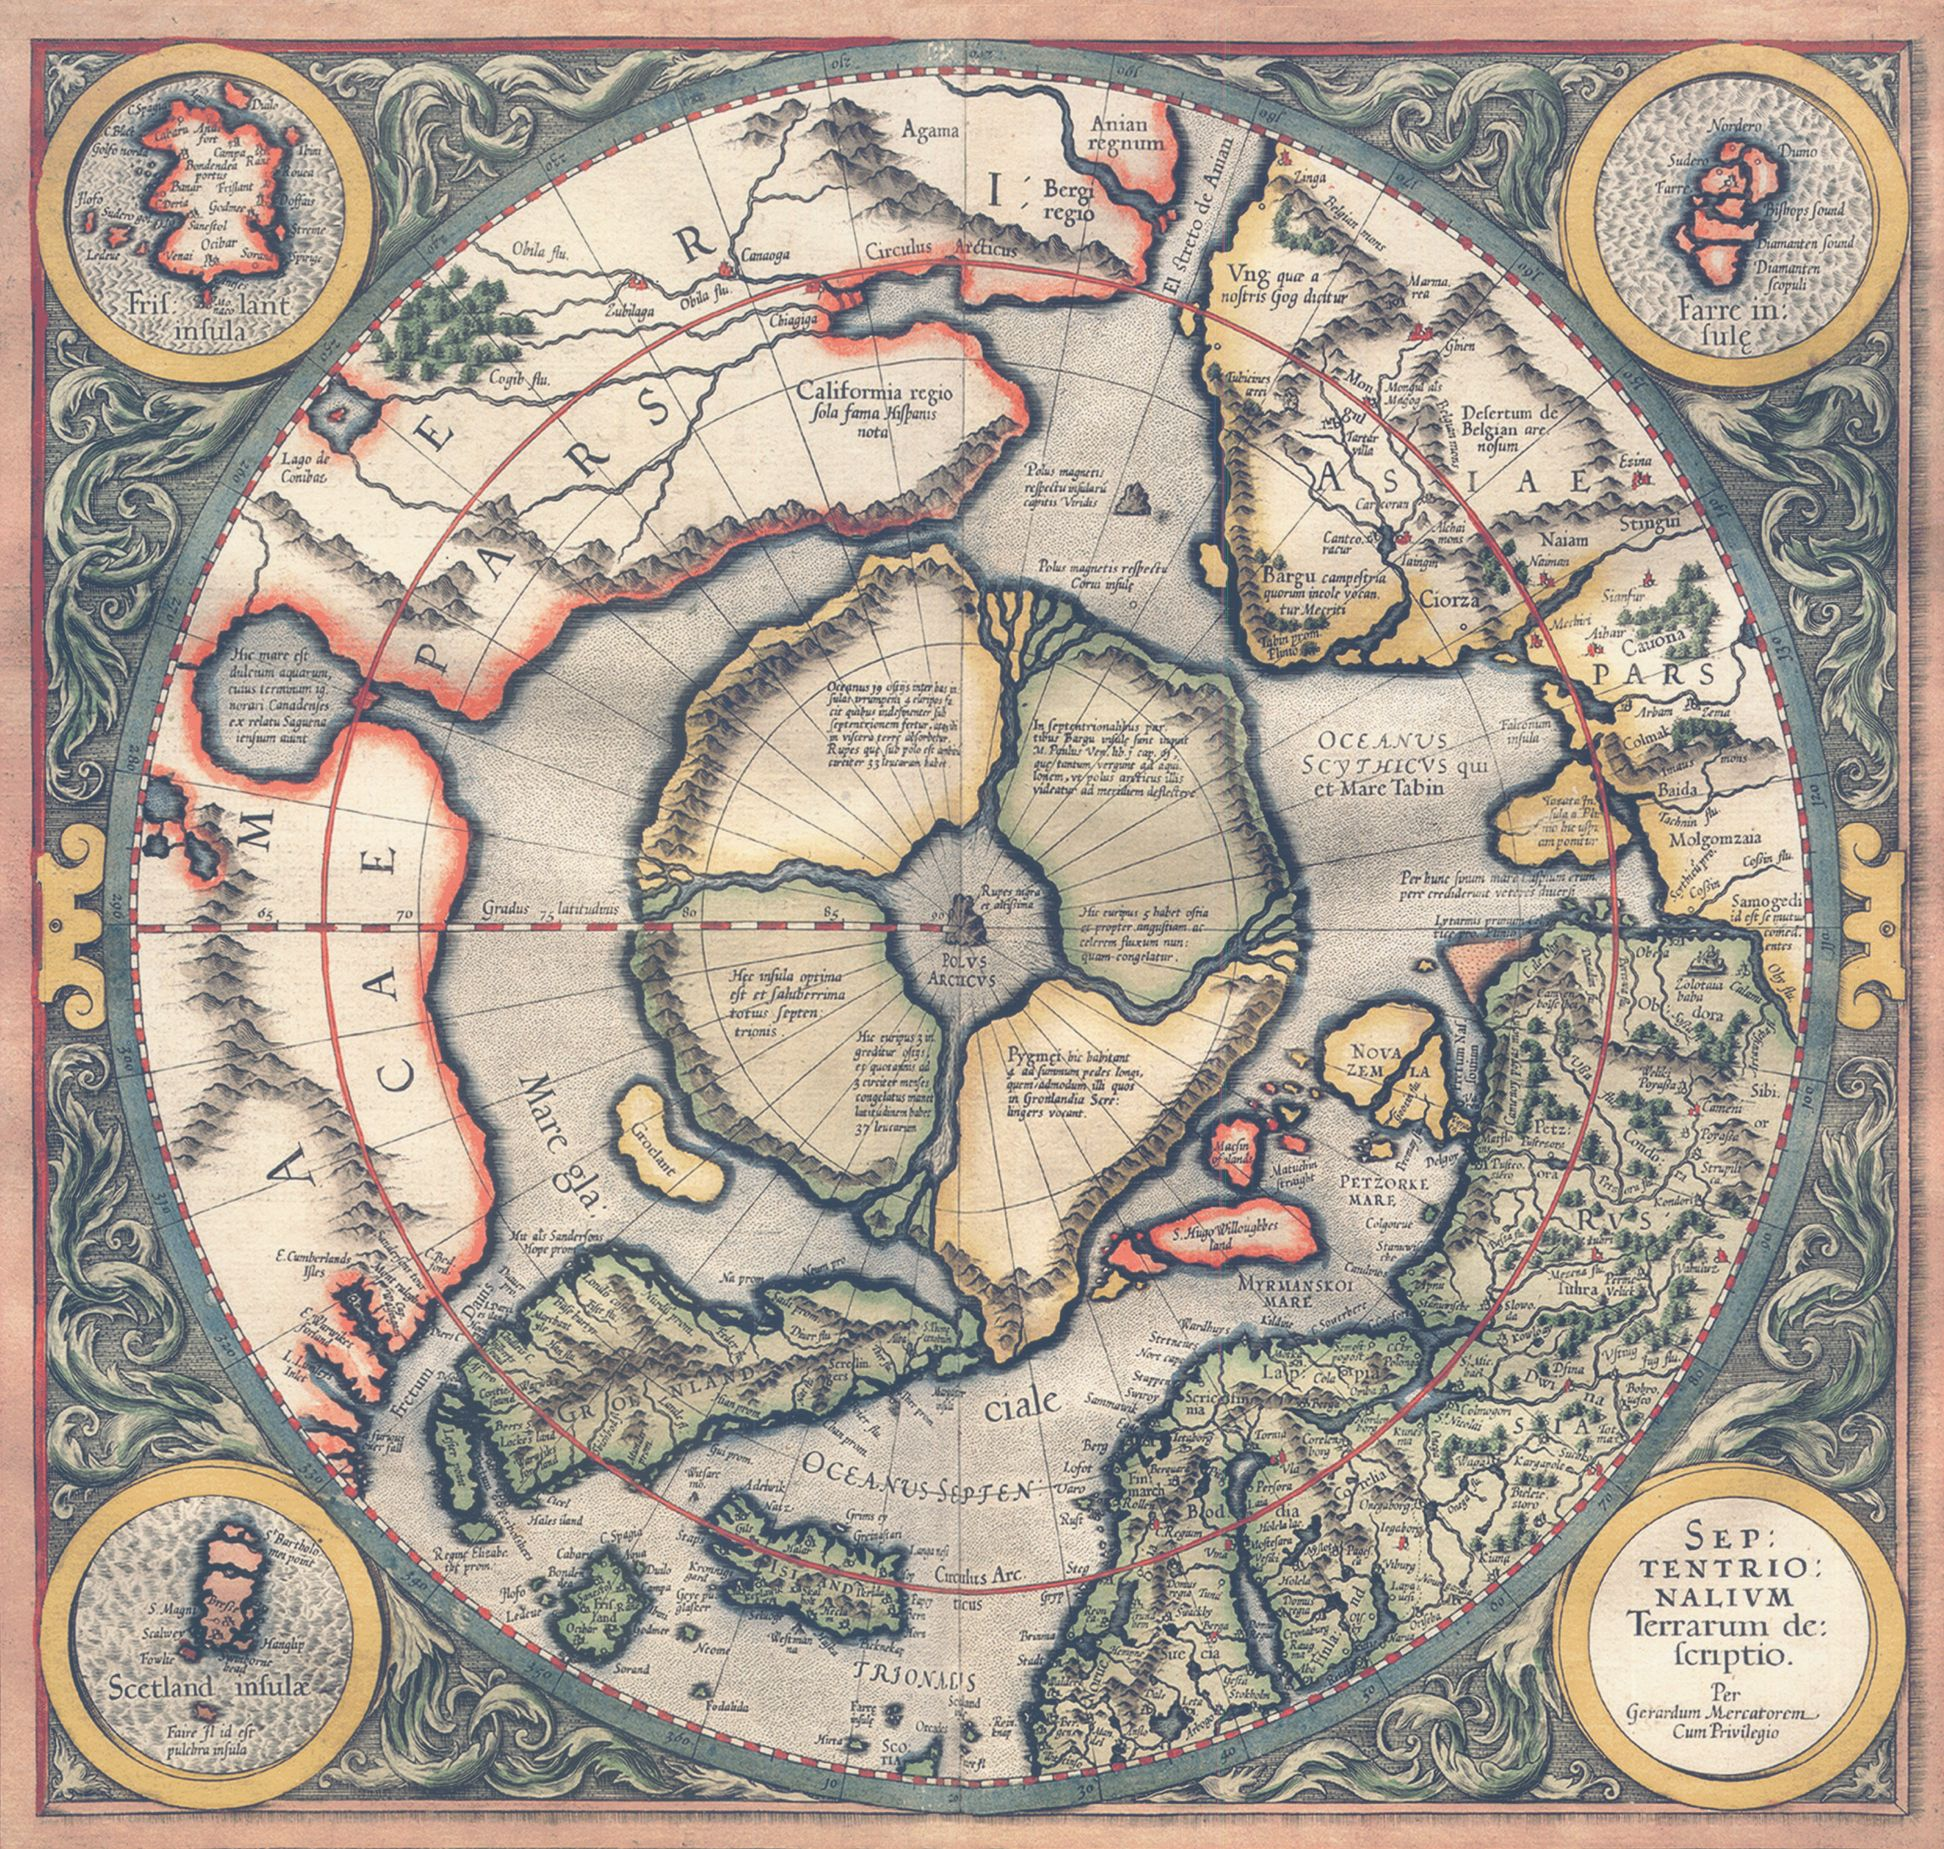 Old world map of atlantis the lost city of atlantis pinterest old world map of atlantis gumiabroncs Gallery